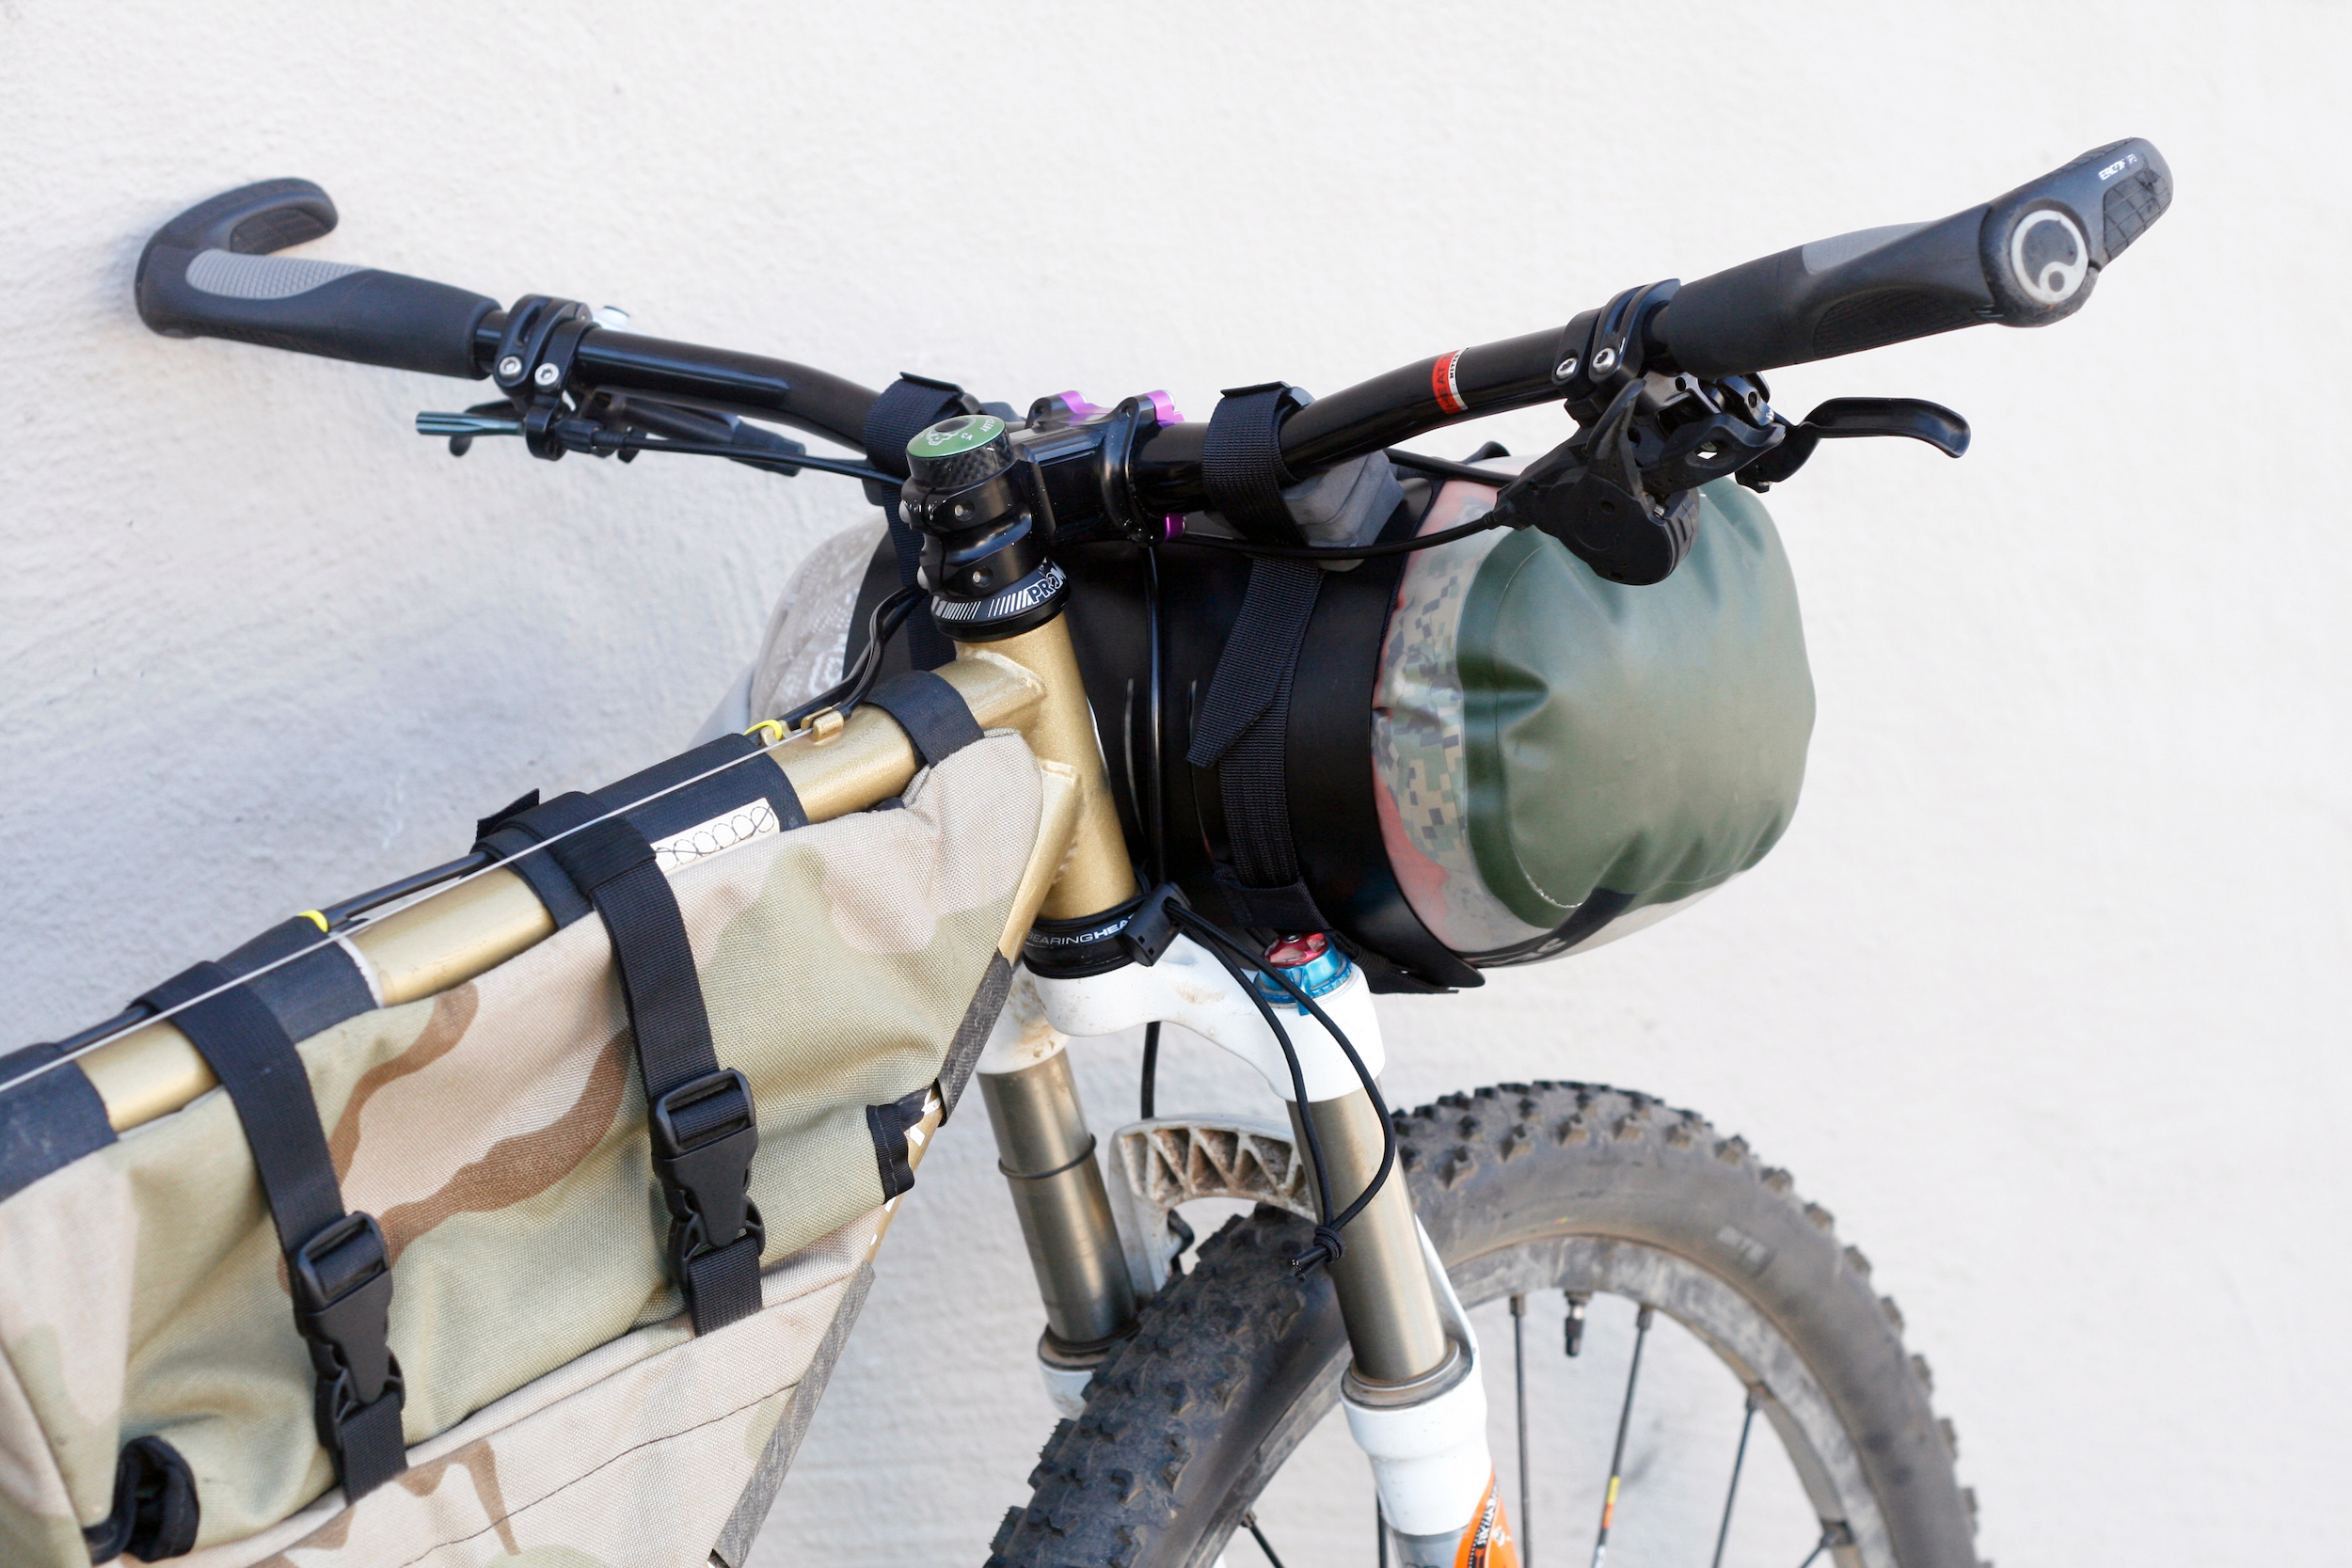 (2) spacers on each handlebar attachment, 10L dry bag shown